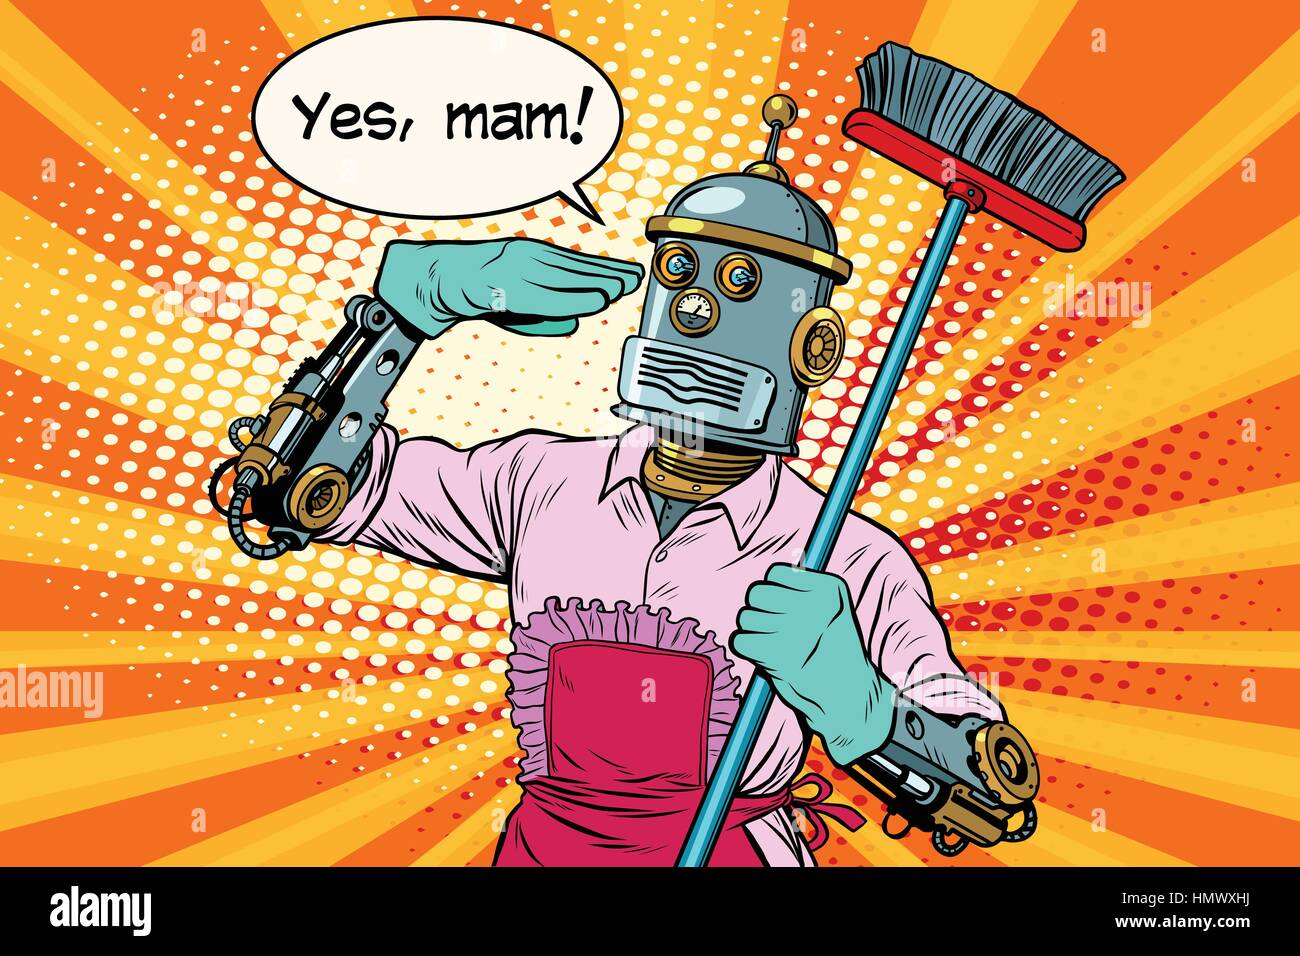 yes mam Robot and cleaning the house - Stock Vector